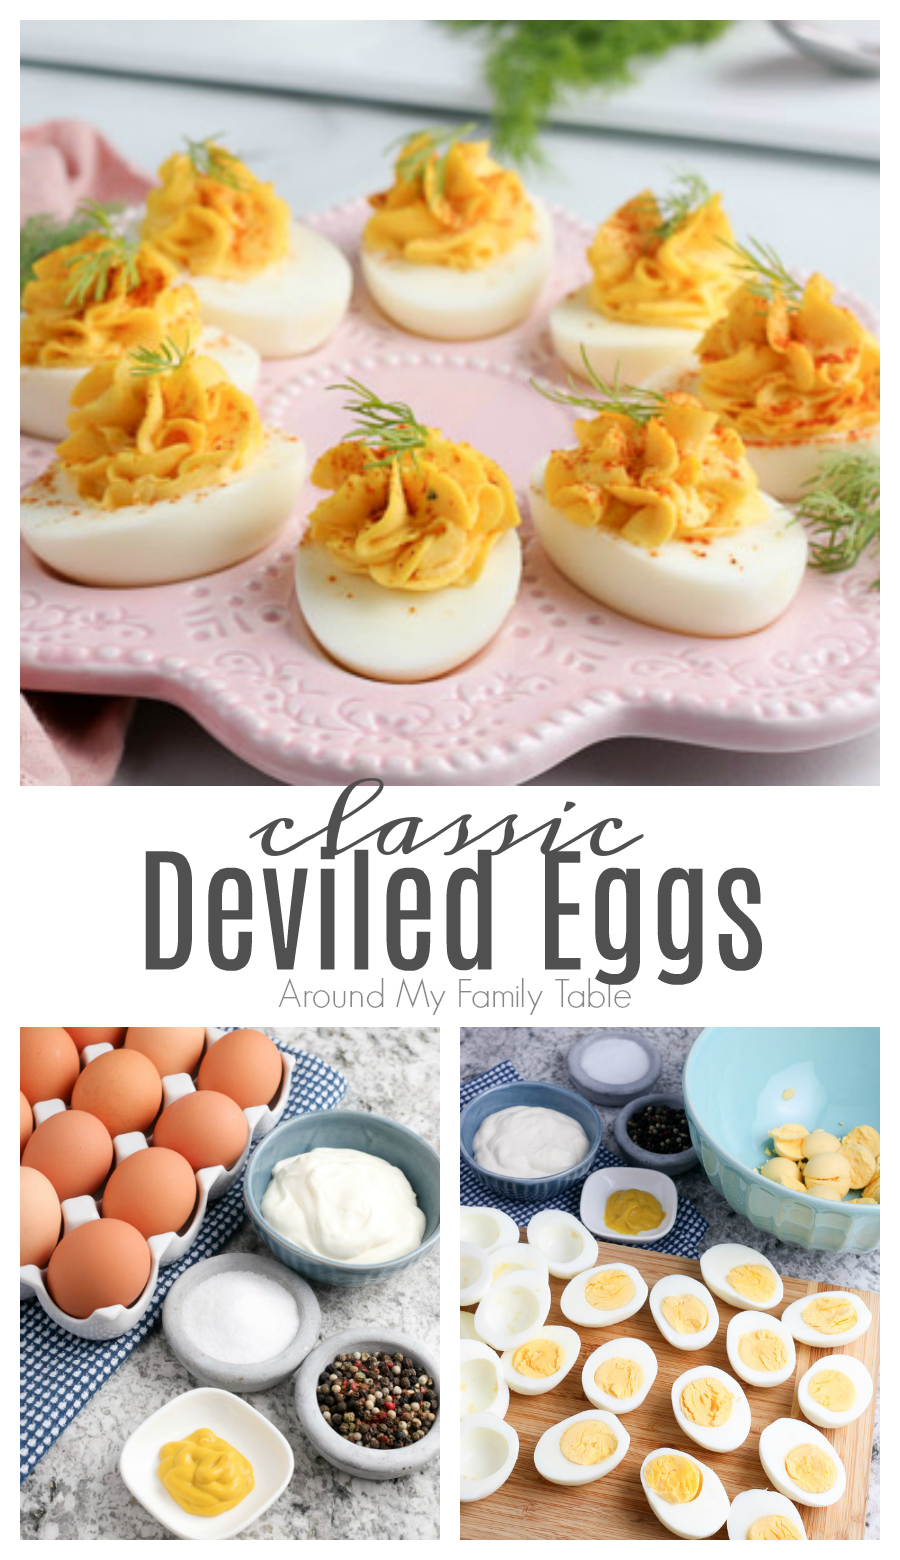 The best deviled eggs recipe is this one, because you make it with just 4 ingredients! The eggs are perfectly cooked, creamy, and taste delicious! via @slingmama